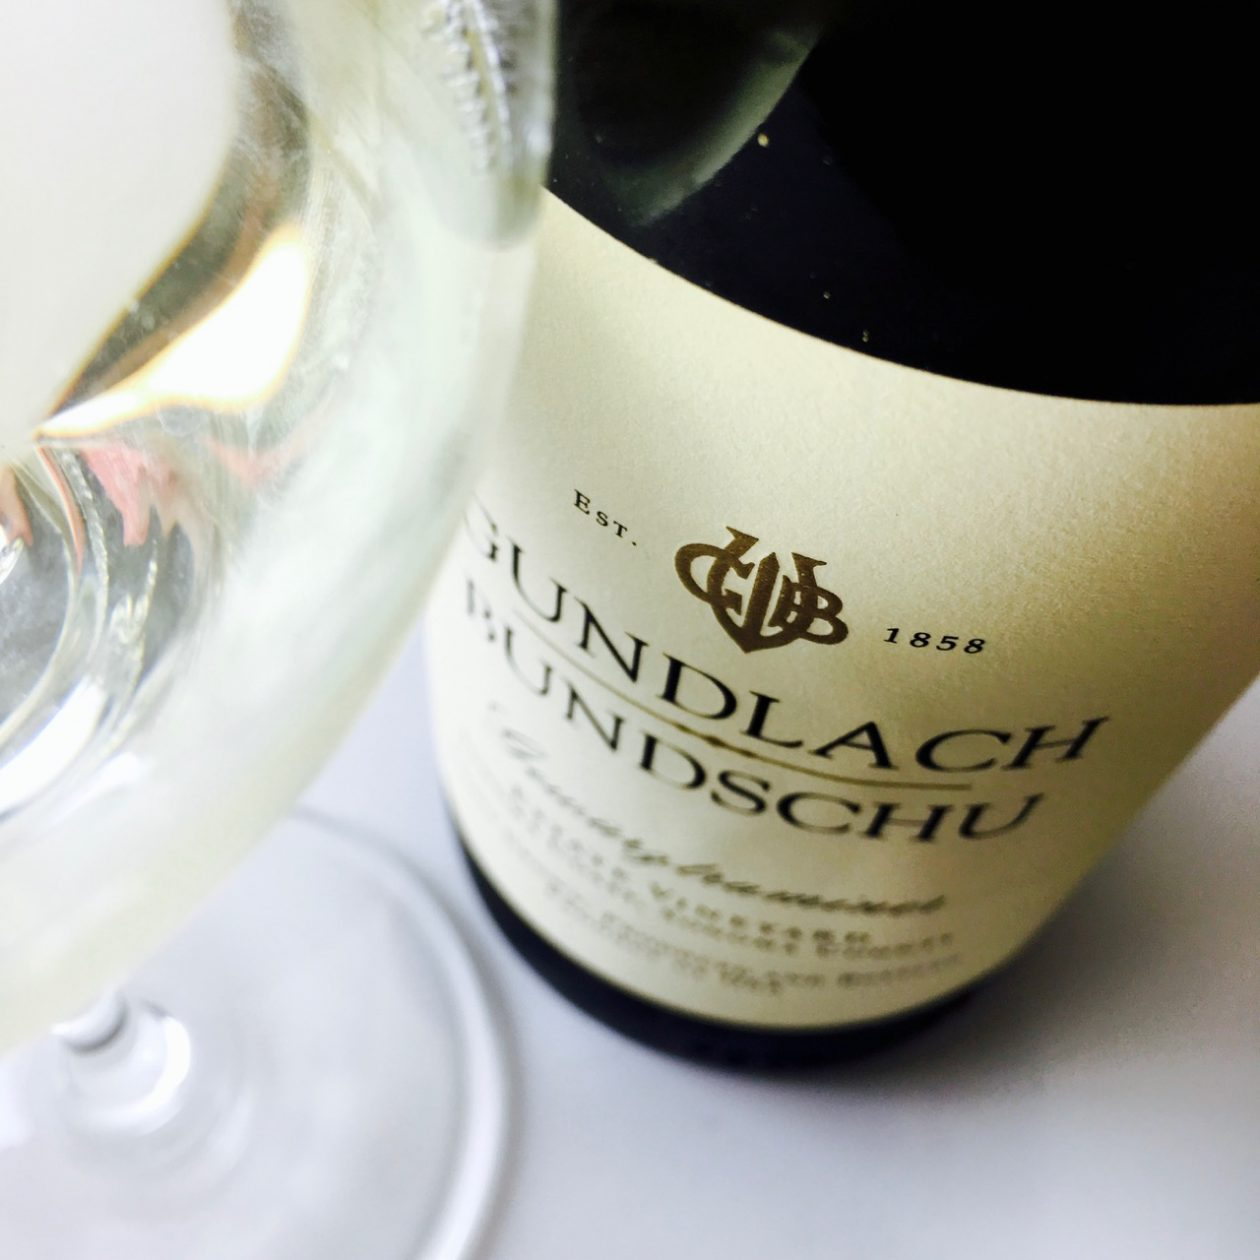 2014 Gundlach Bundschu Gewürztraminer Estate Vineyard Sonoma Coast, Sonoma County